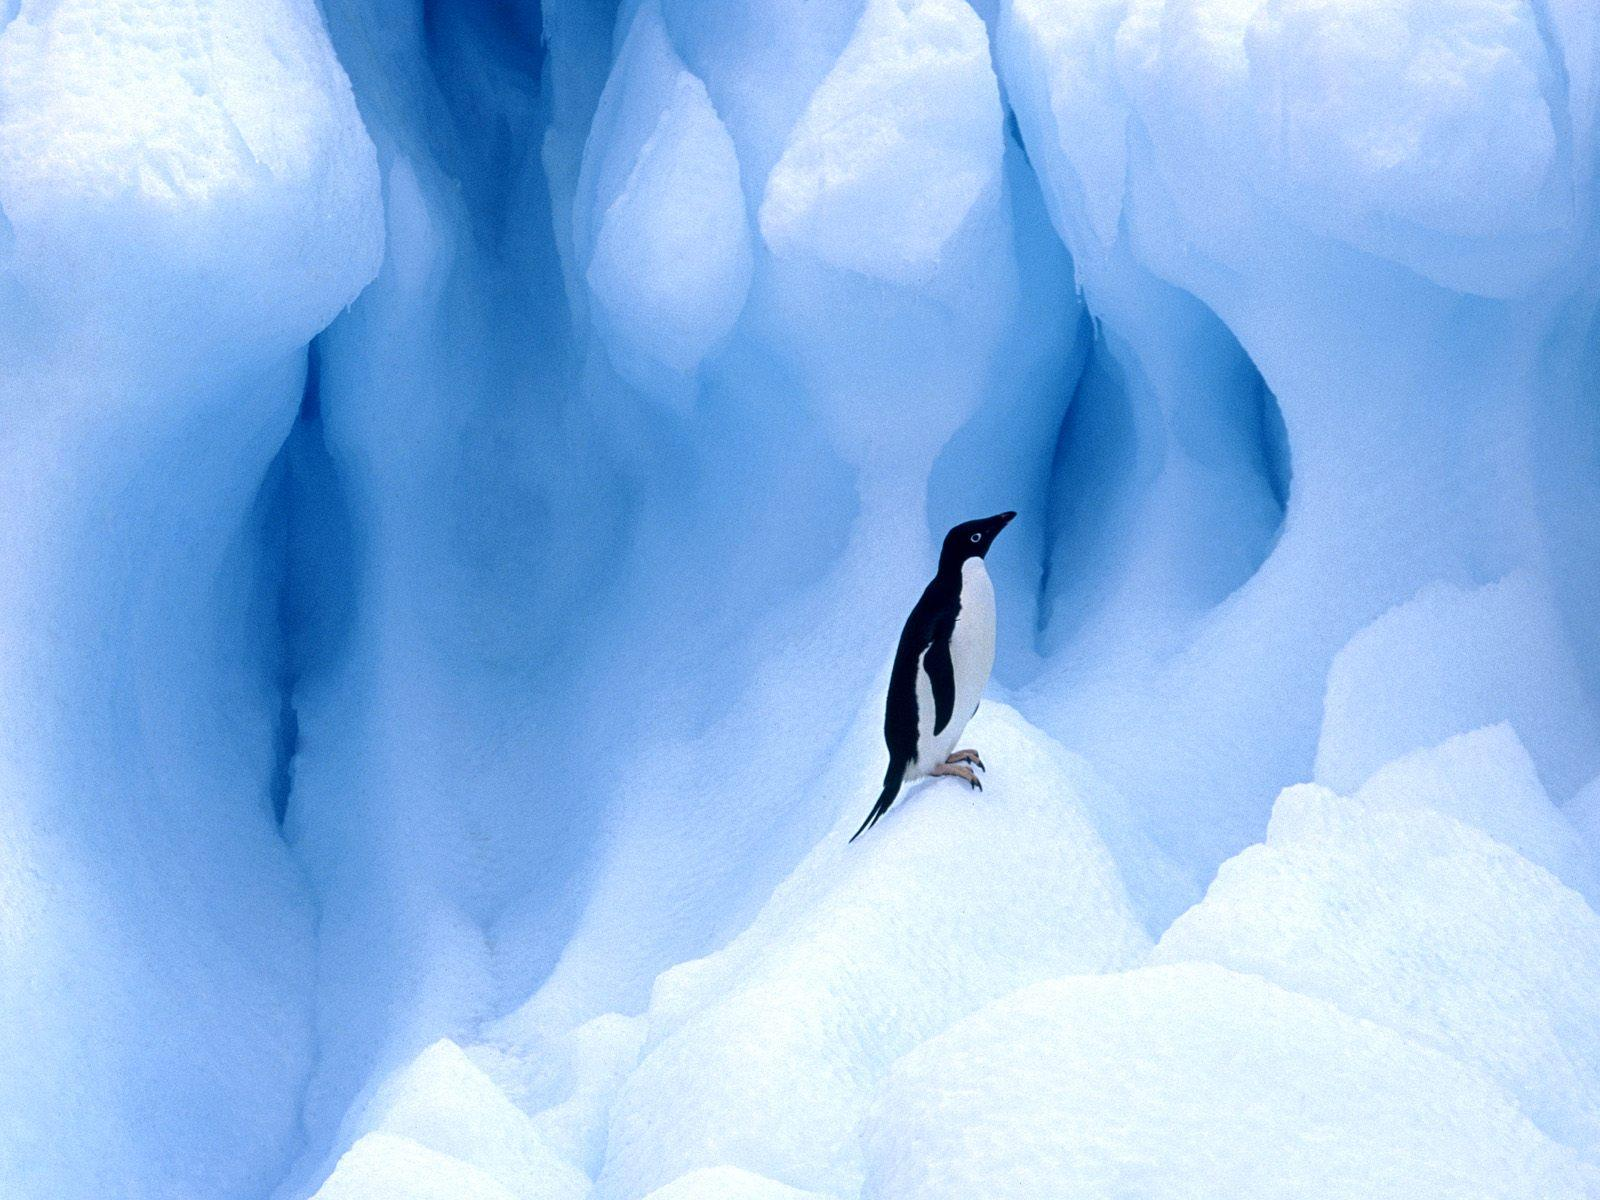 Penguin Wallpapers HD Pictures  One HD Wallpaper Pictures 1600x1200